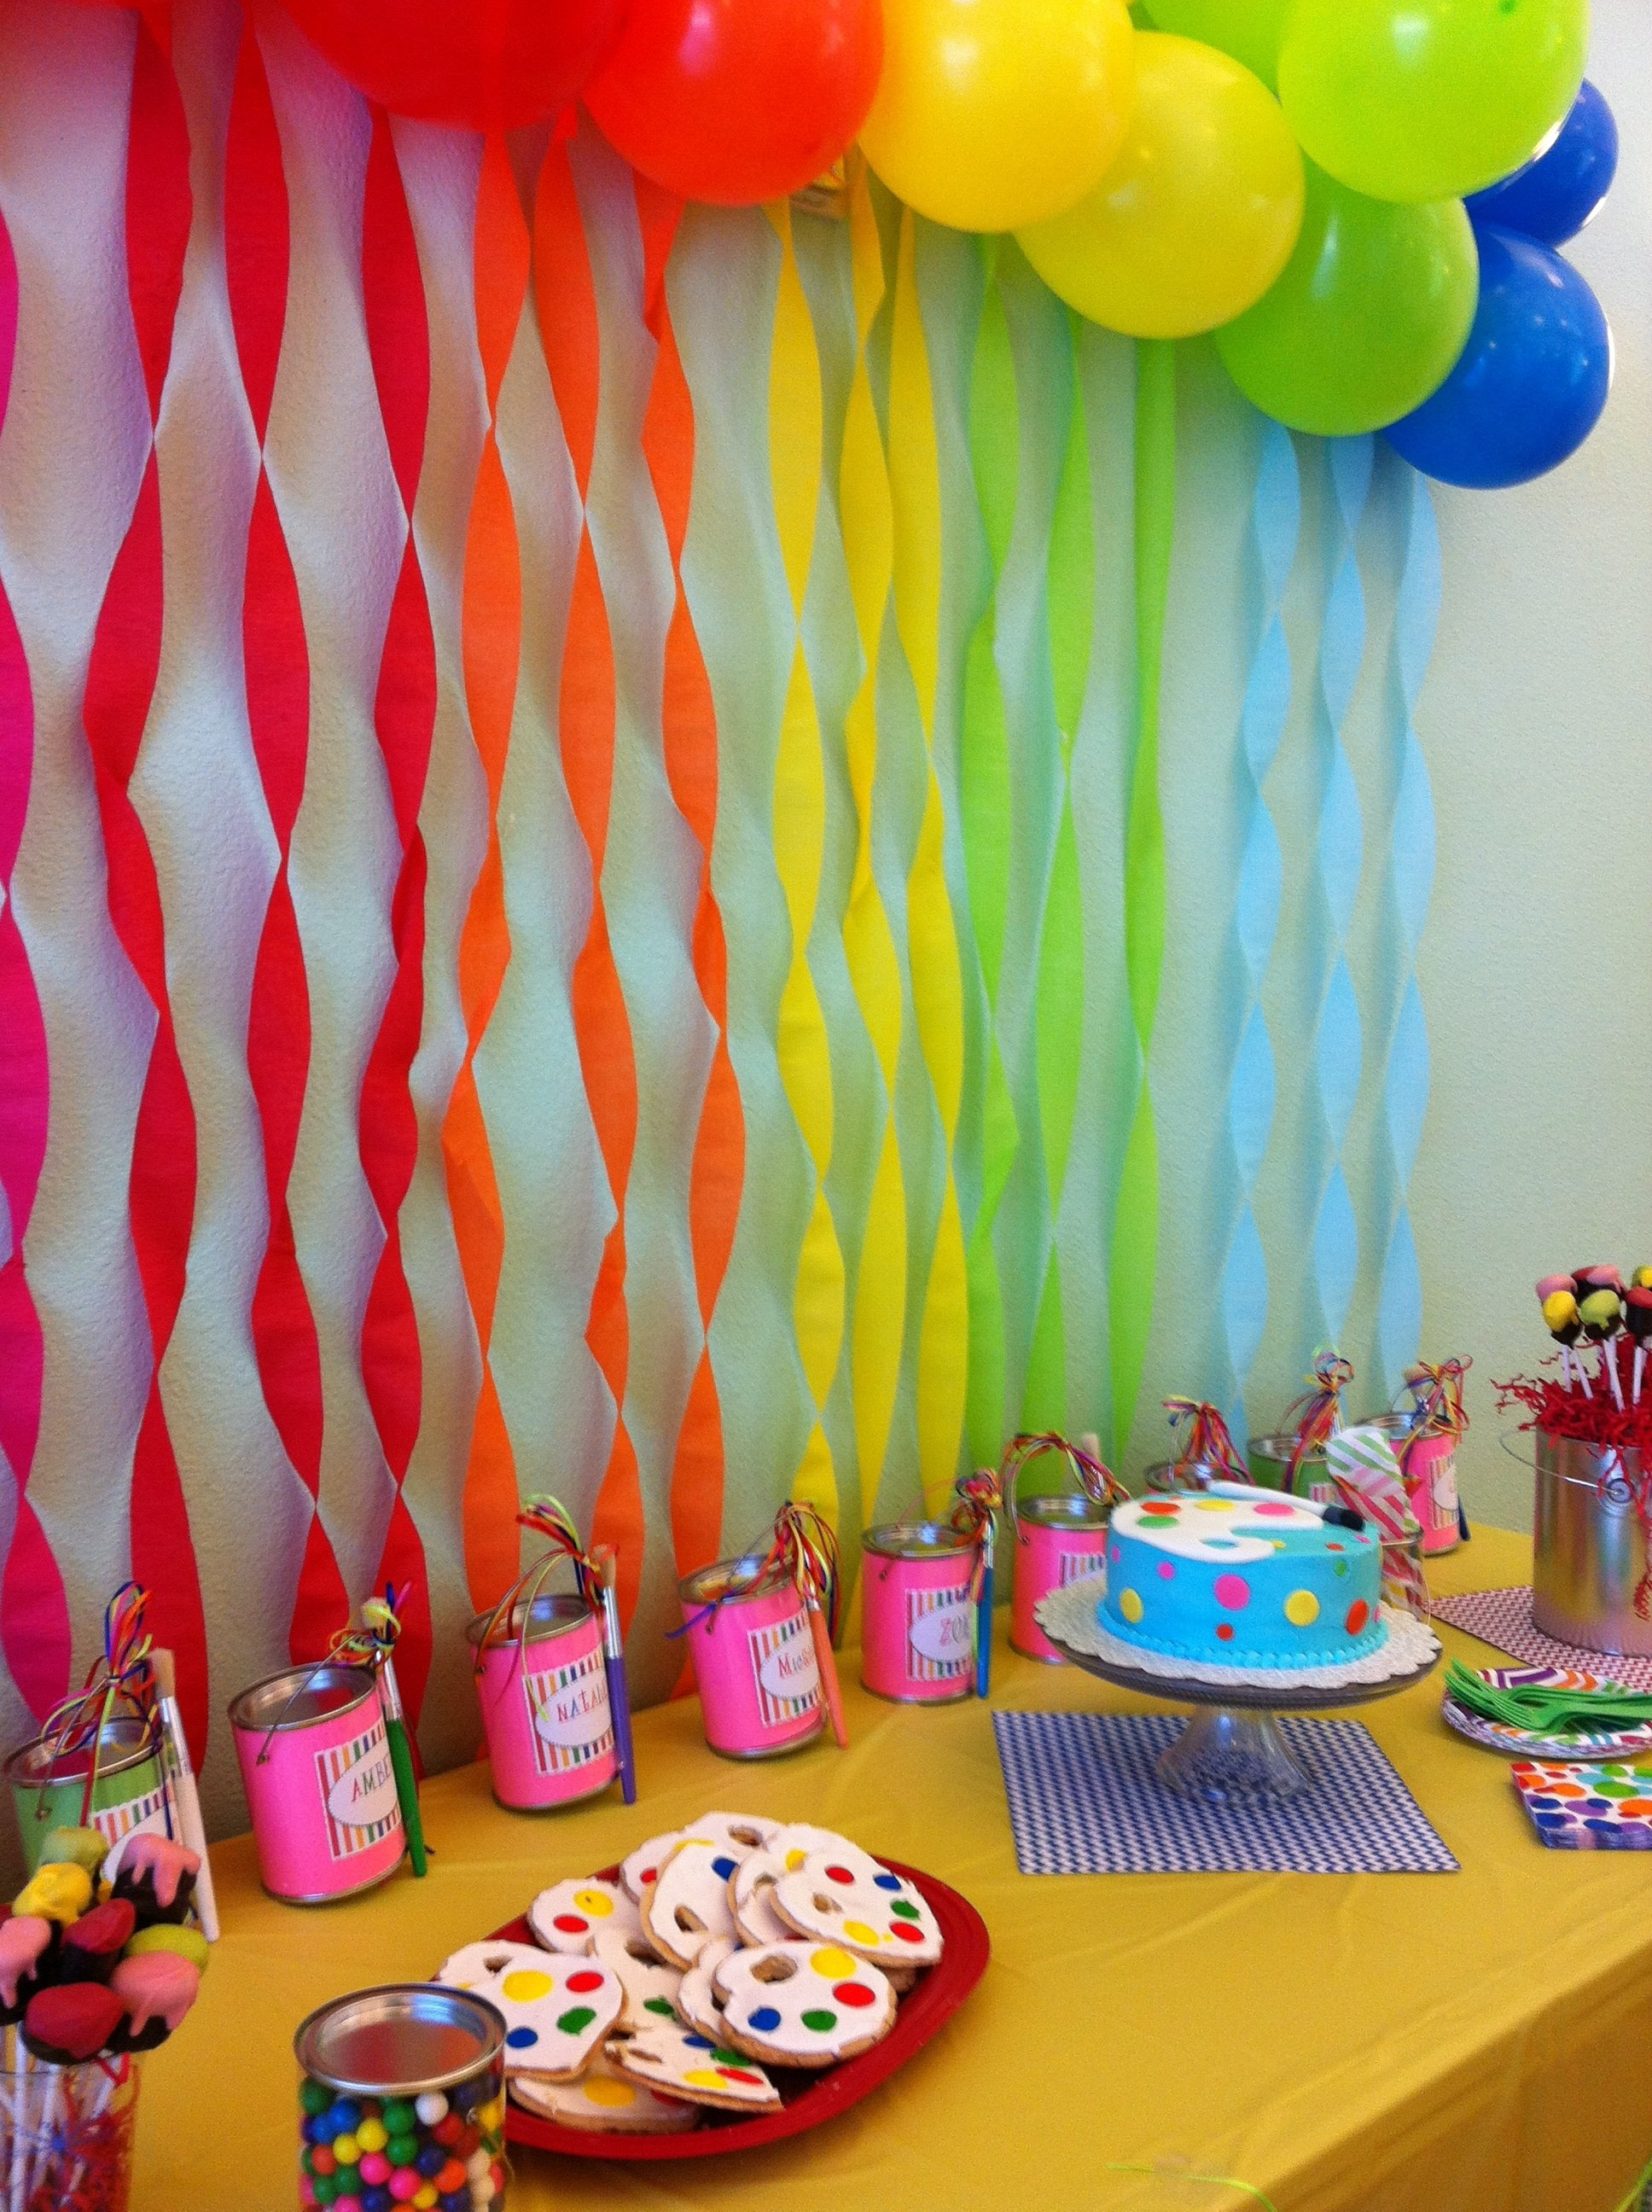 10 Most Recommended Ideas For 1 Year Old Birthday 8 year old girl birthday art party art party pinterest art 56 2020